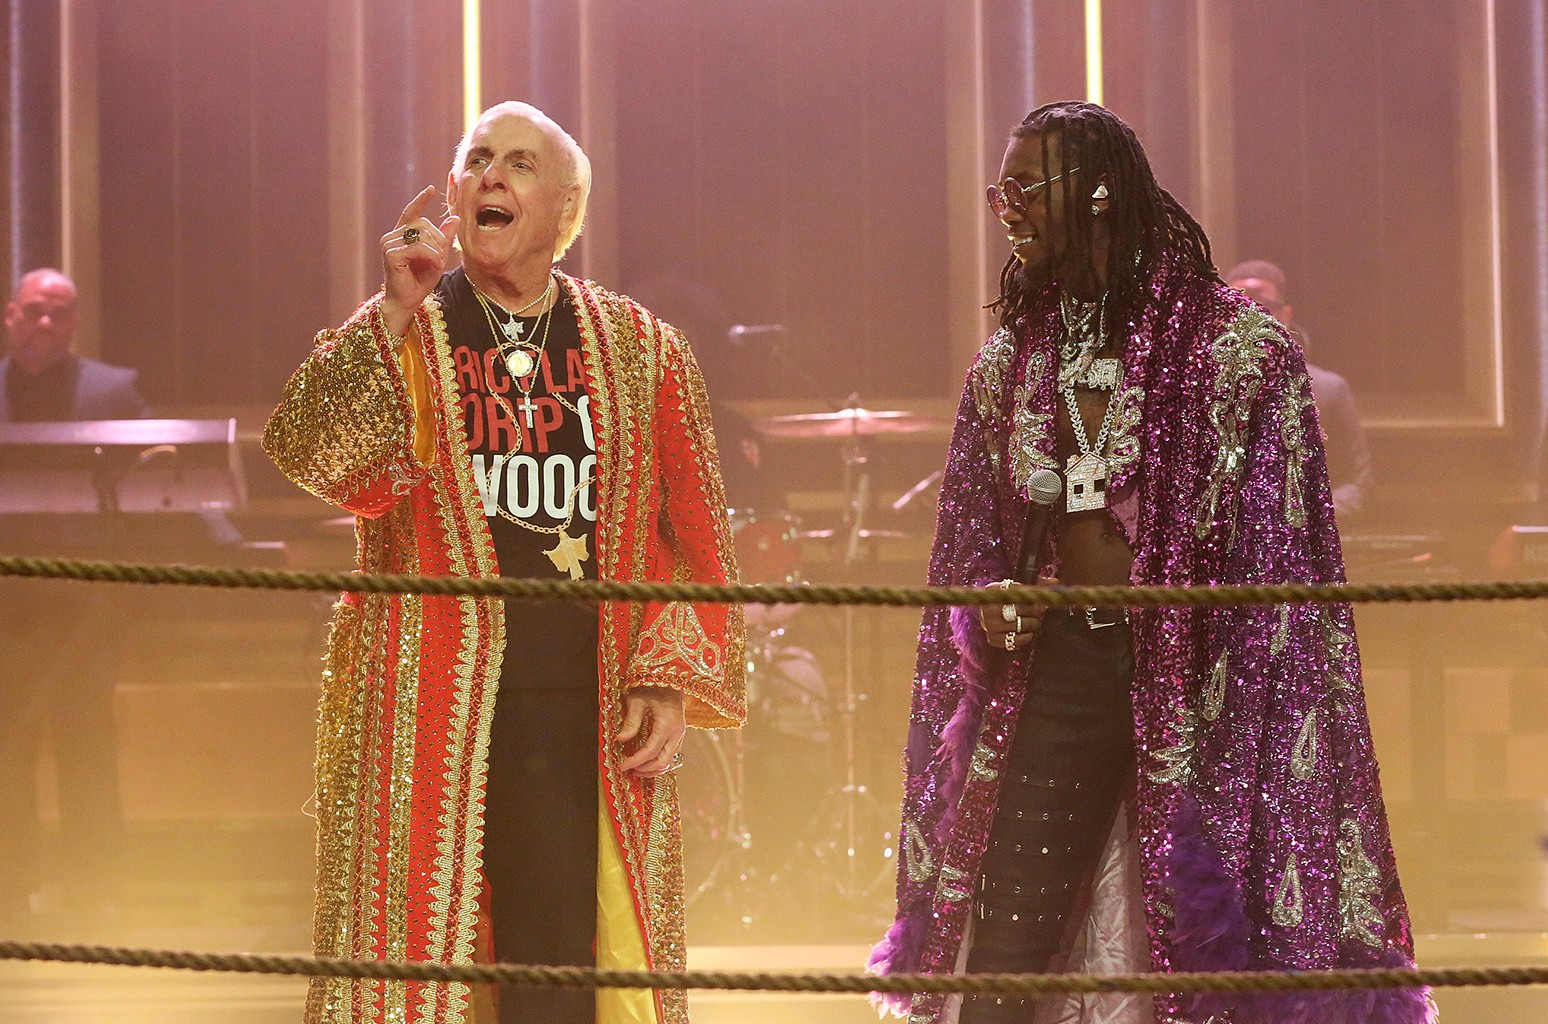 Offset & Metro Boomin with Ric Flair